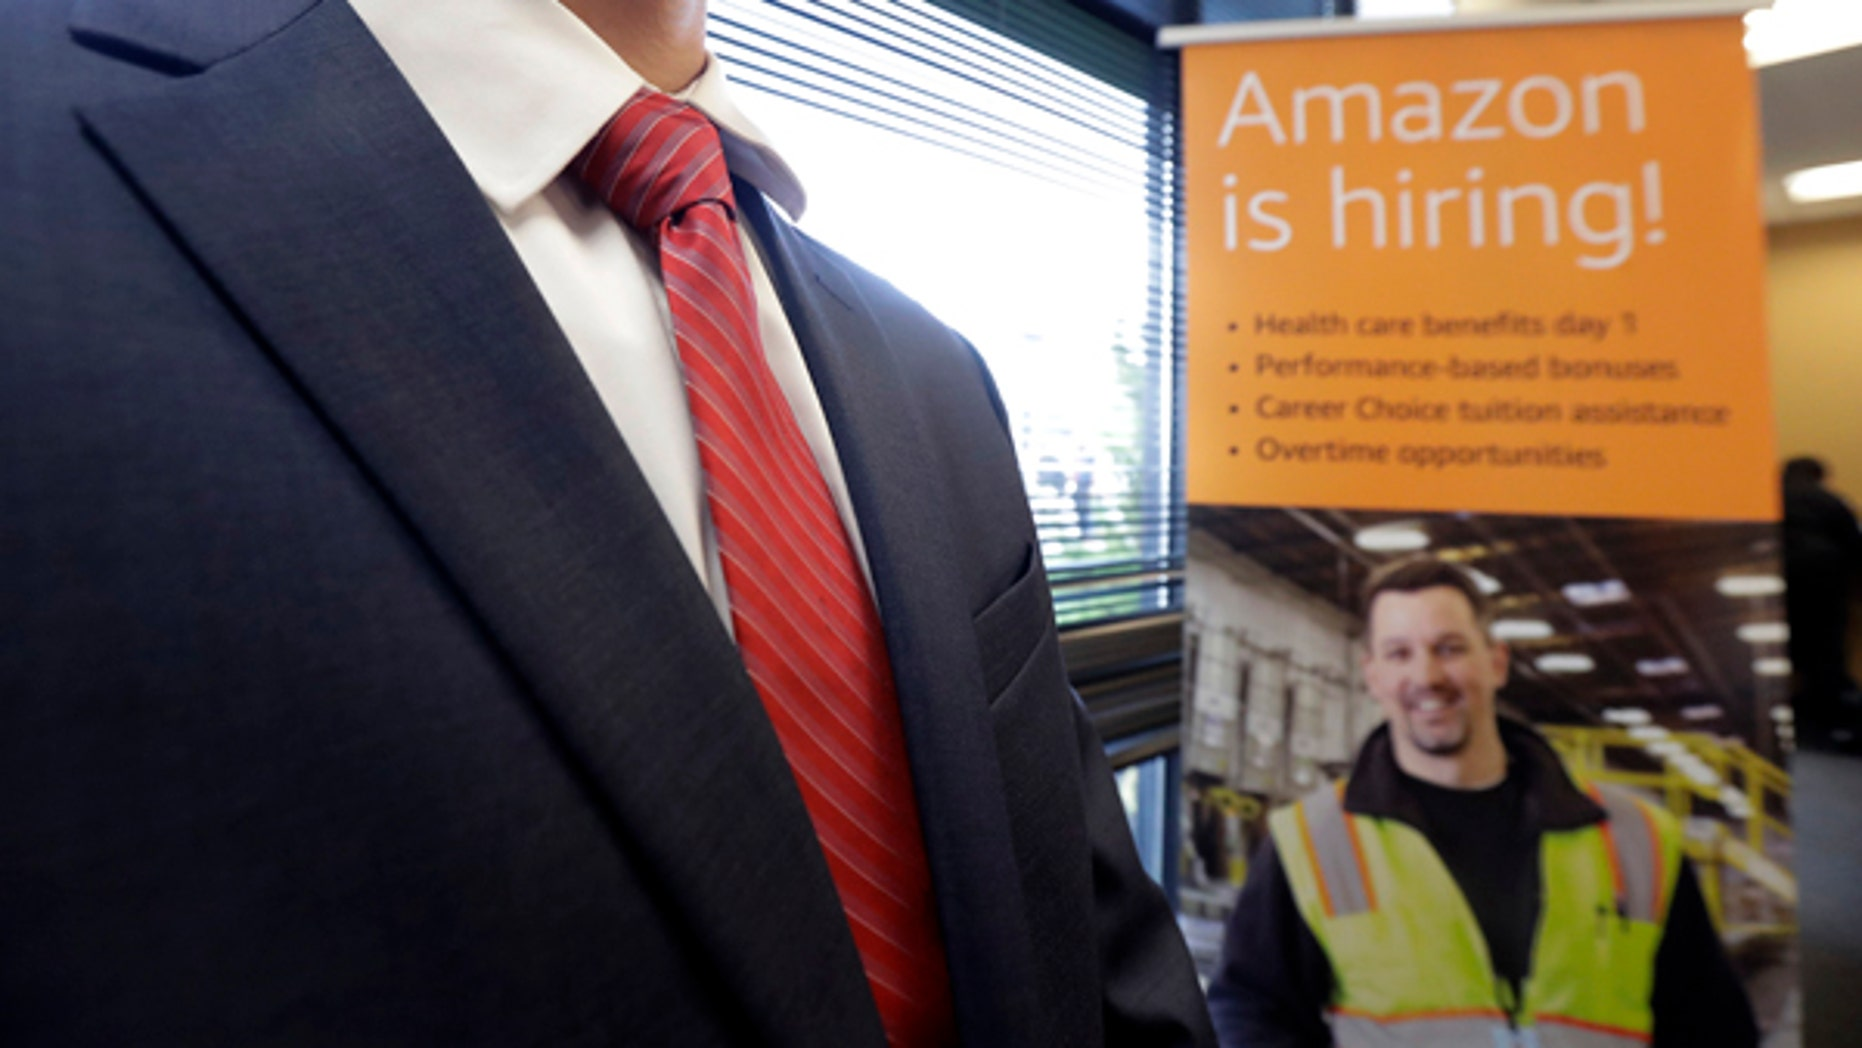 Amazon plans to make thousands of job offers on the spot at nearly a dozen U.S. warehouses.